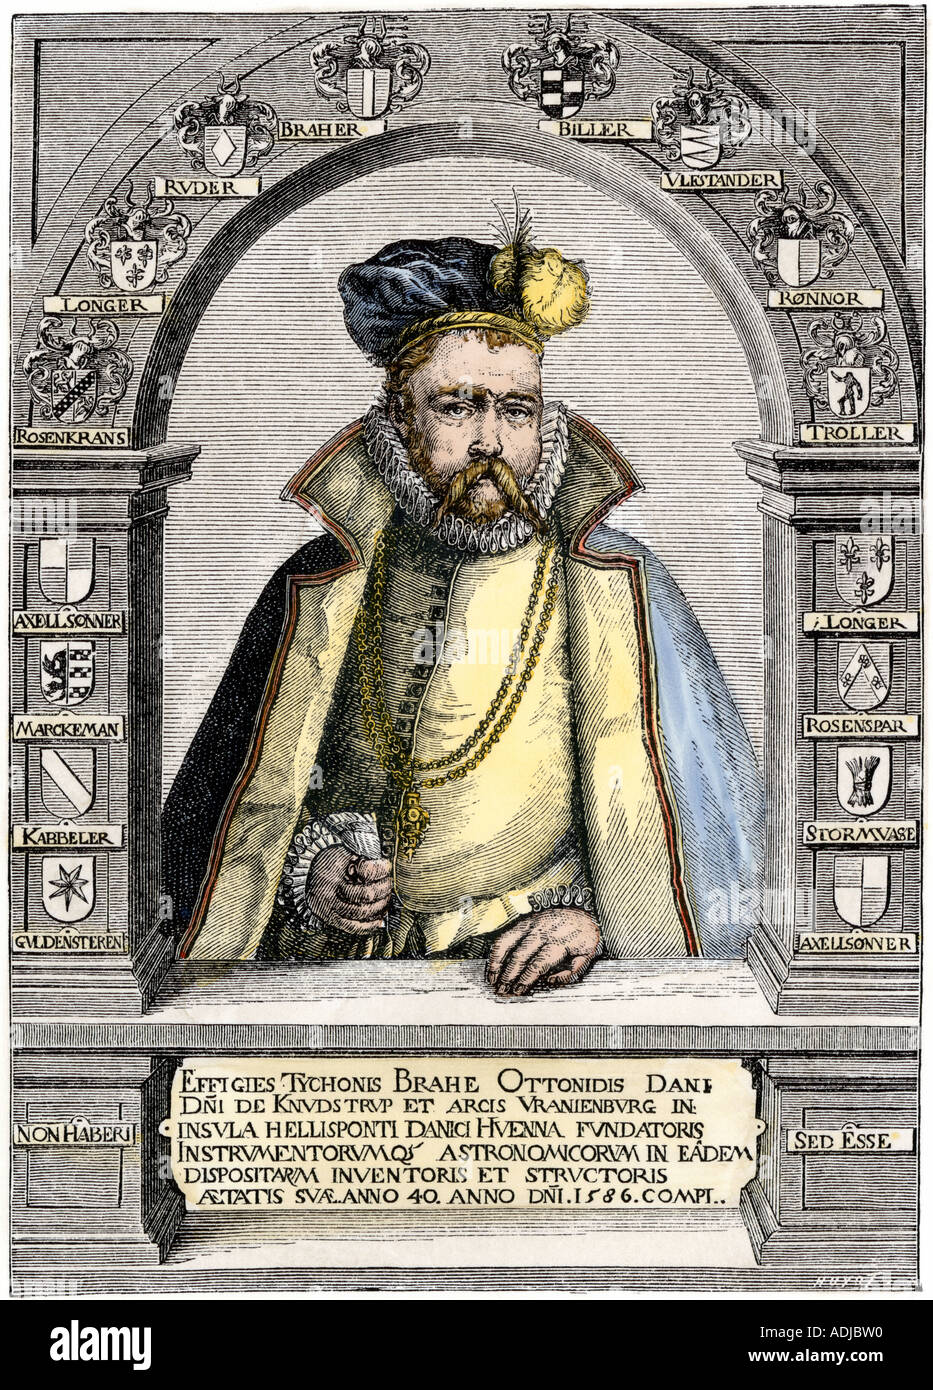 Tycho Brahe portrait in 1586. Hand-colored woodcut - Stock Image